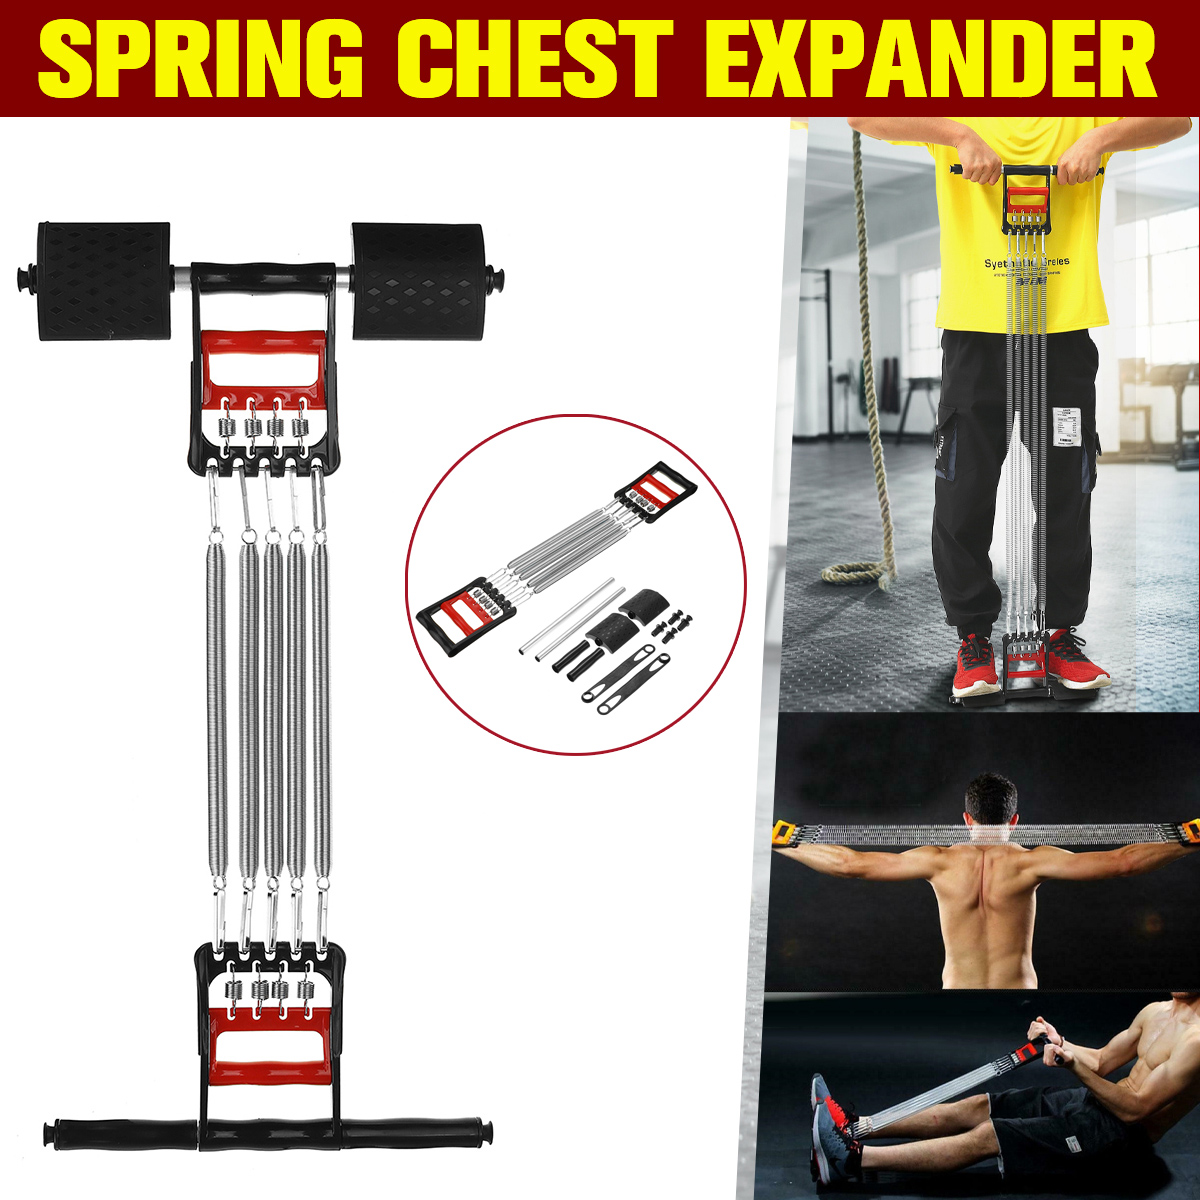 5 Springs 3 In 1 Chest Expander Exercise Fitness Puller Muscle Stretcher Gym